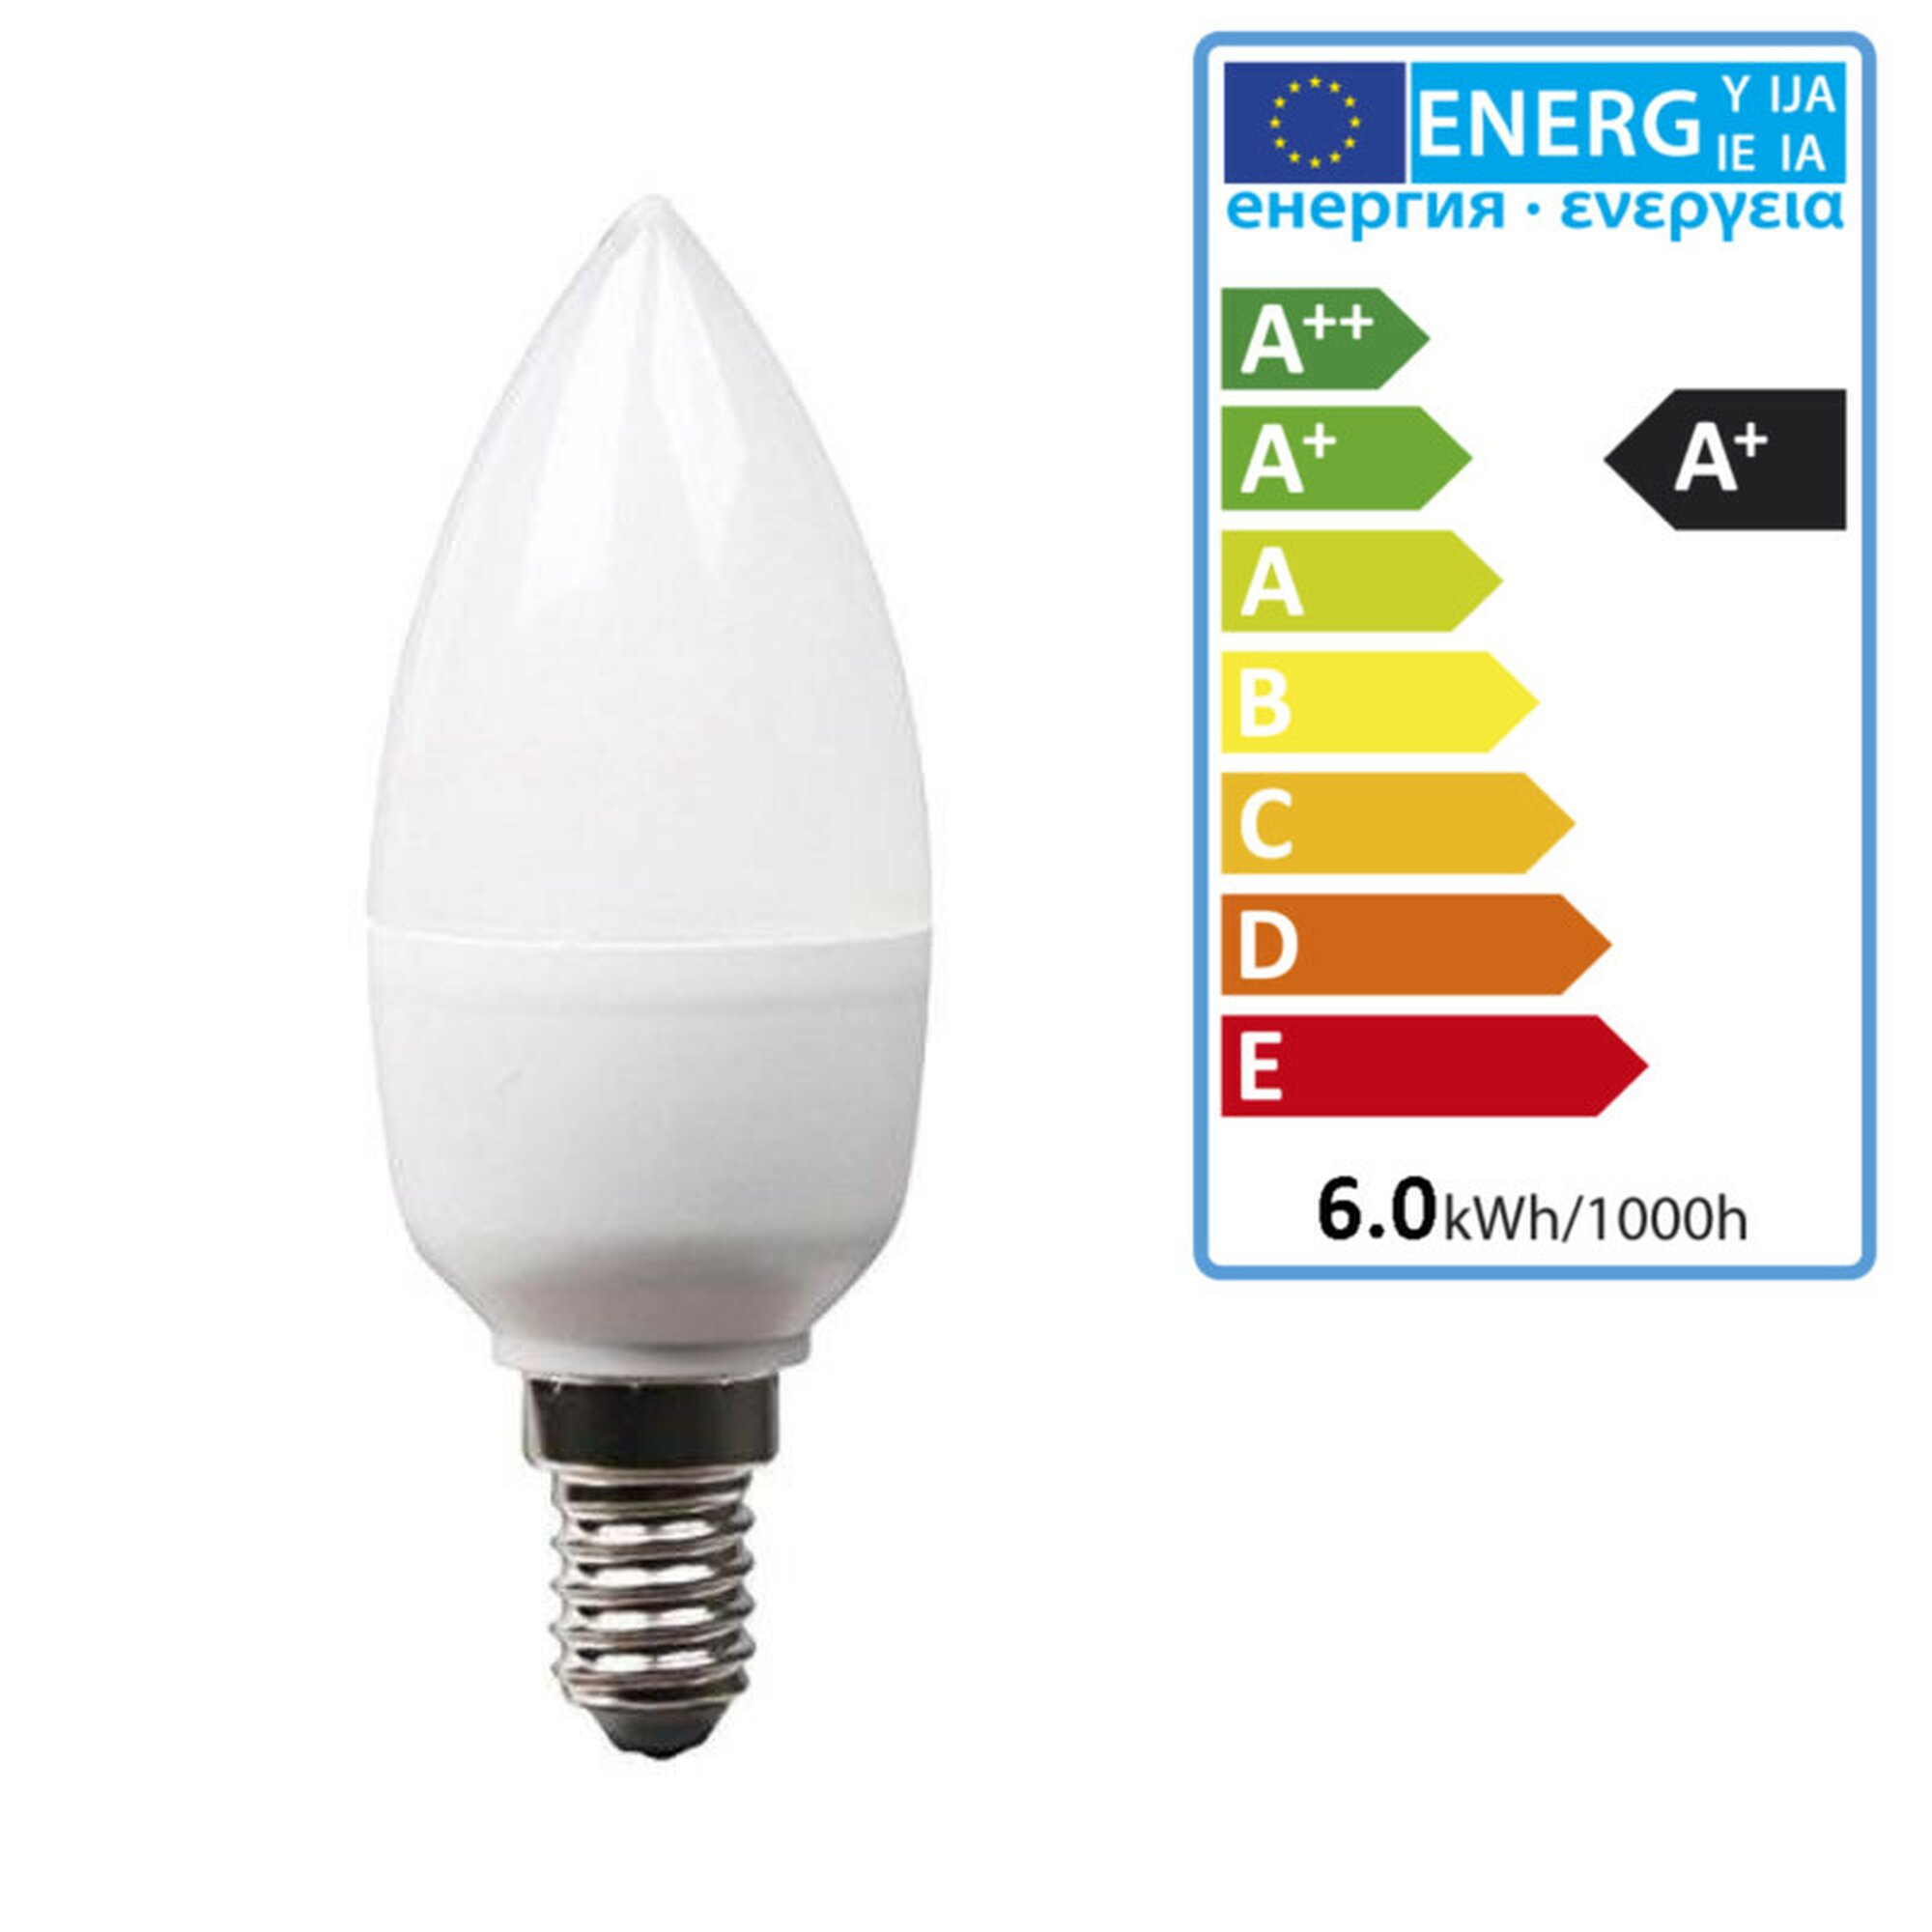 led-kerze-xq13188-kerzenform-e14-fassung-2700k-warmweiss-matt Wunderbar Led Mr11 Gu4 Warmweiss Dekorationen